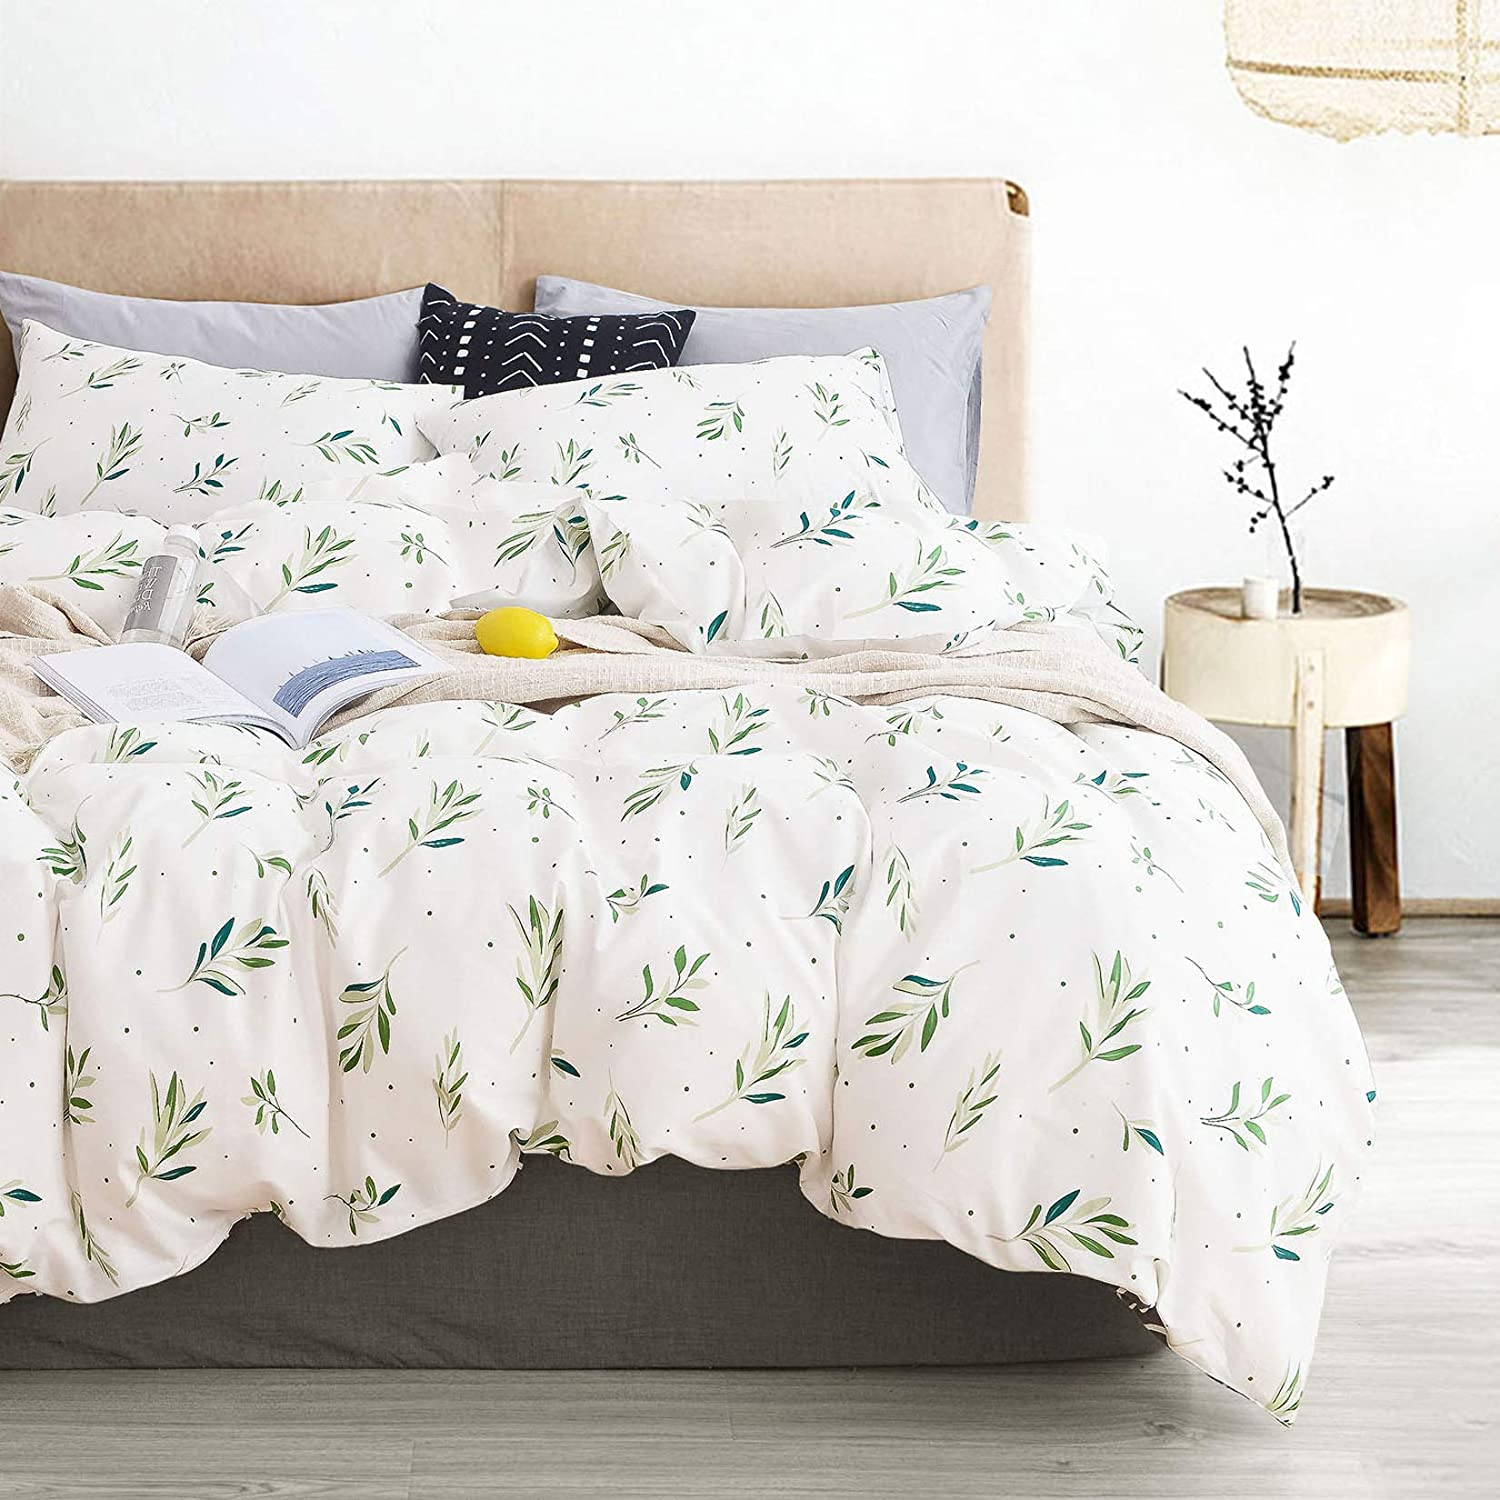 Wake In Cloud - Tree Leaves Duvet Cover Set, 100% Cotton Bedding, Green Botanical Plant Leaves and Dots Modern Pattern Printed on White, with Zipper